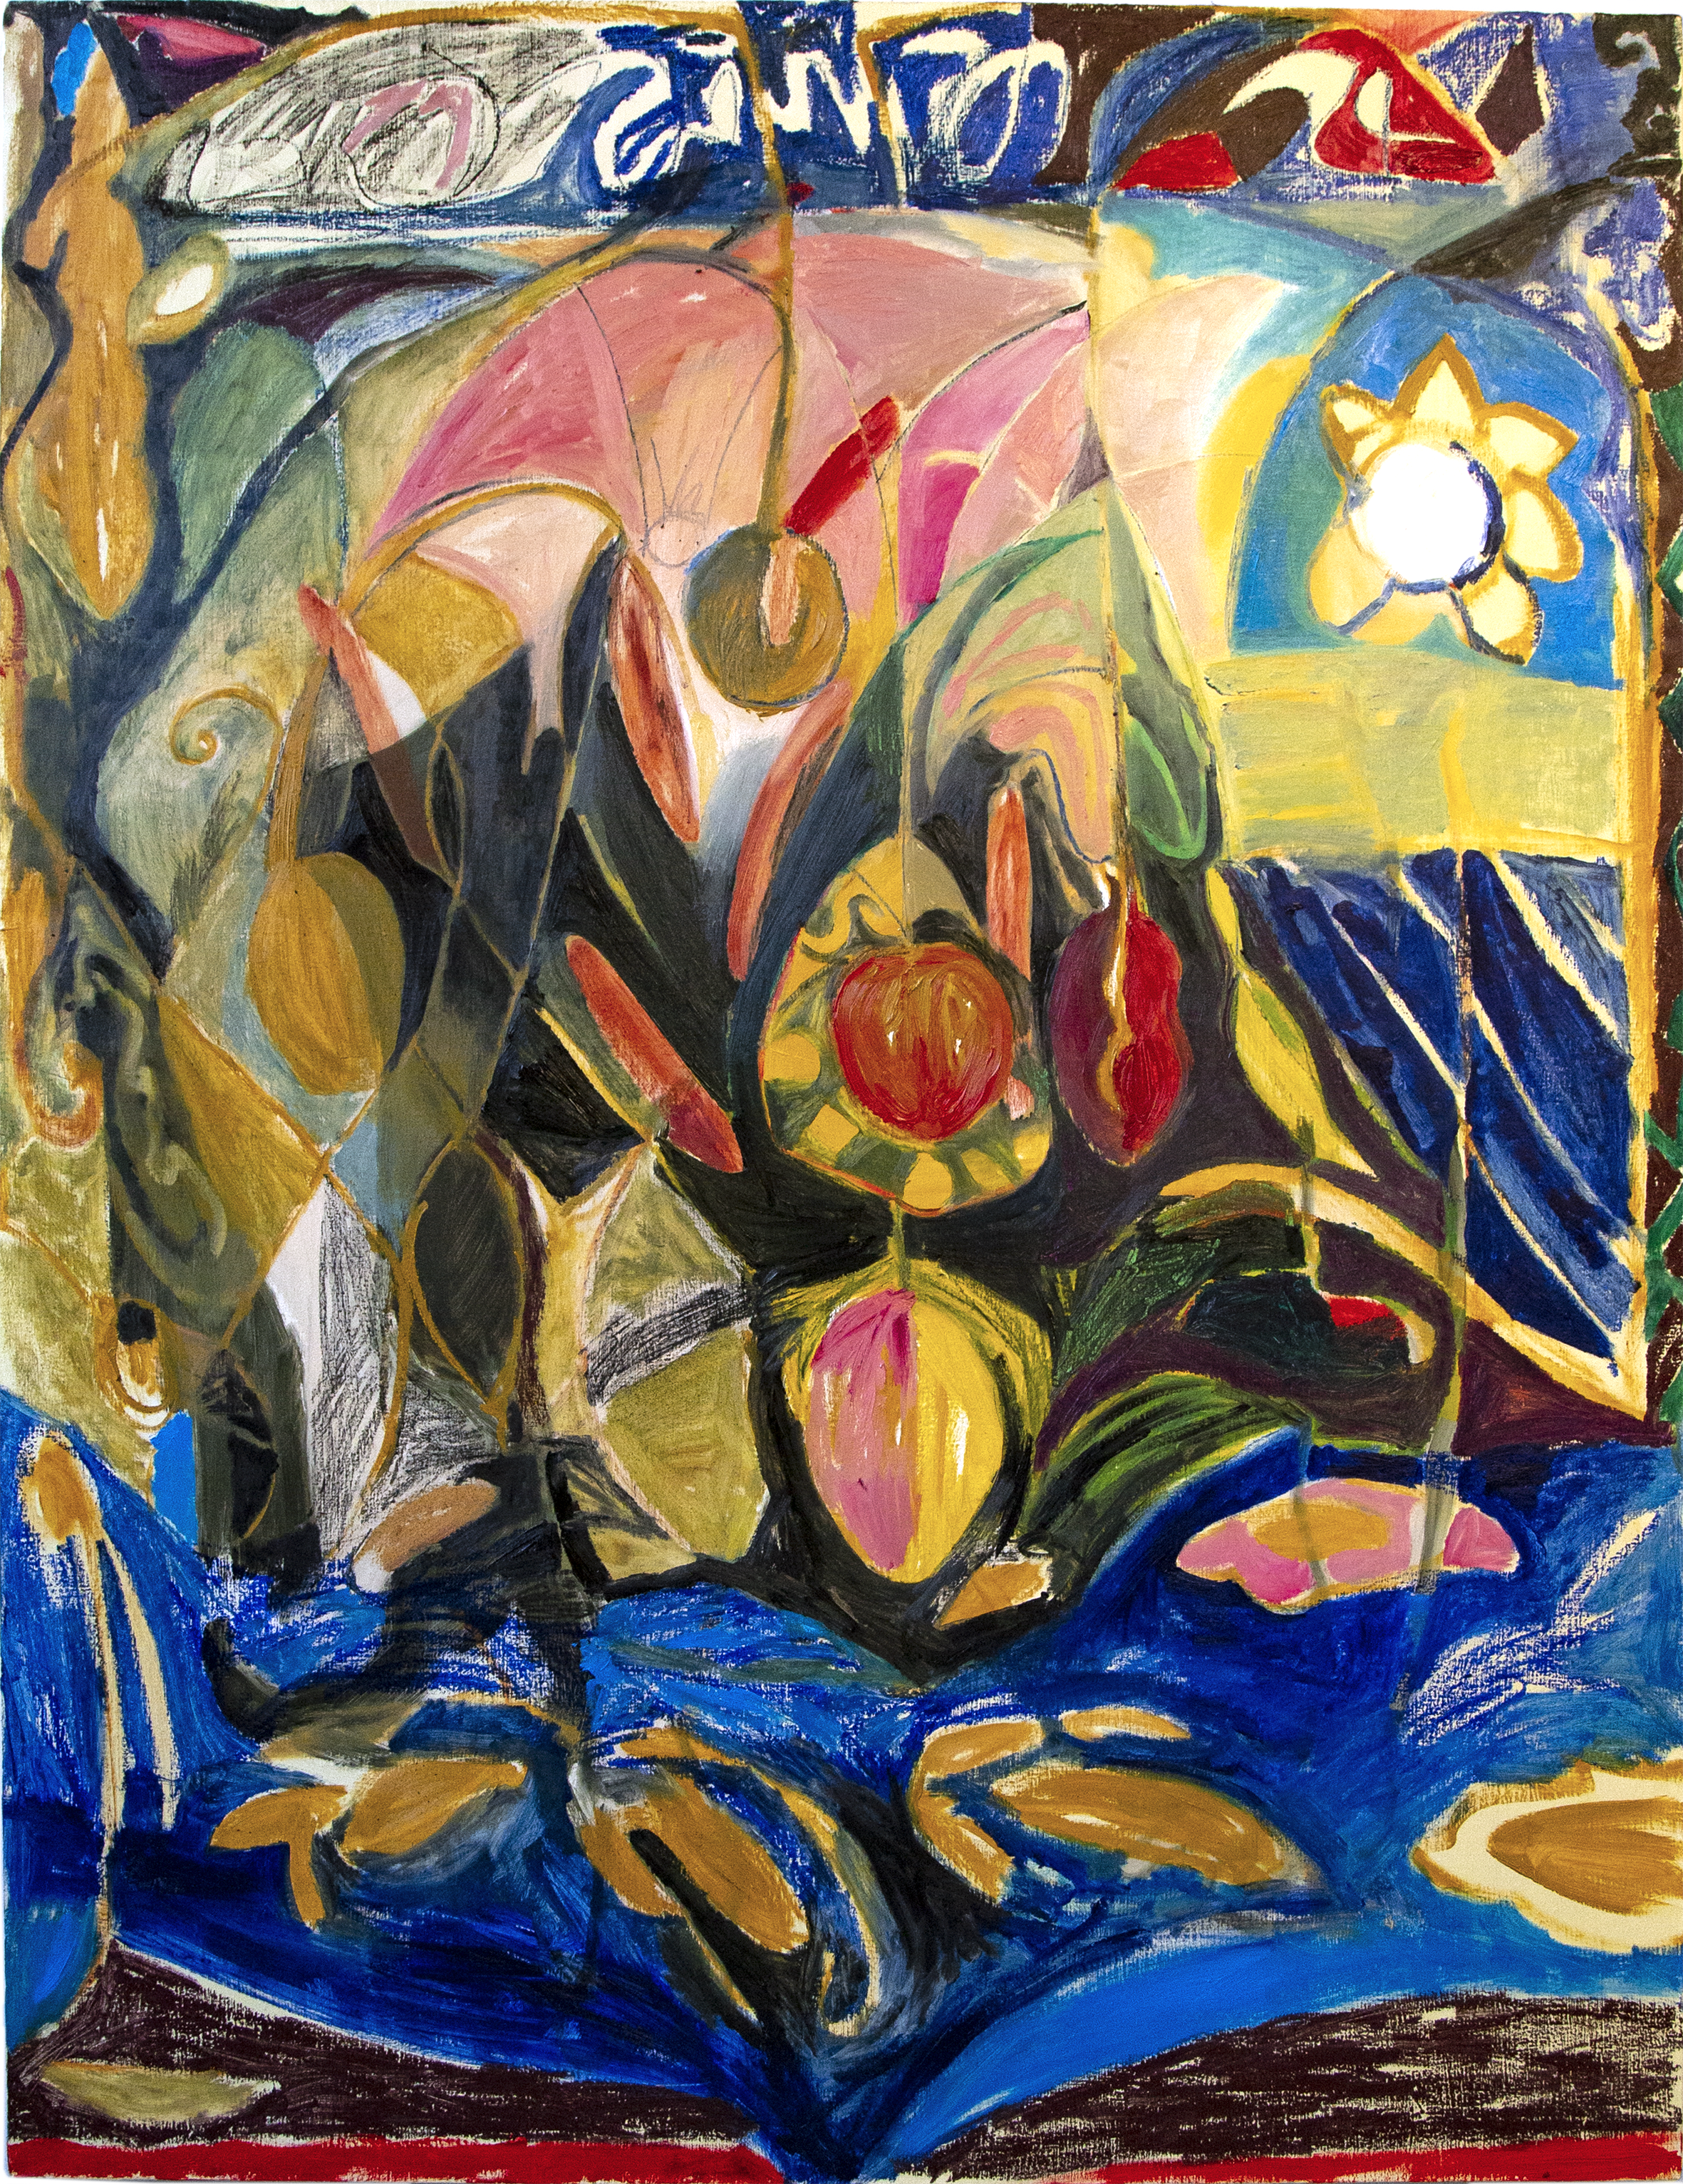 Itchy Scratchy bulrushes, oil on canvas, 170 x 140 cm, 2019.